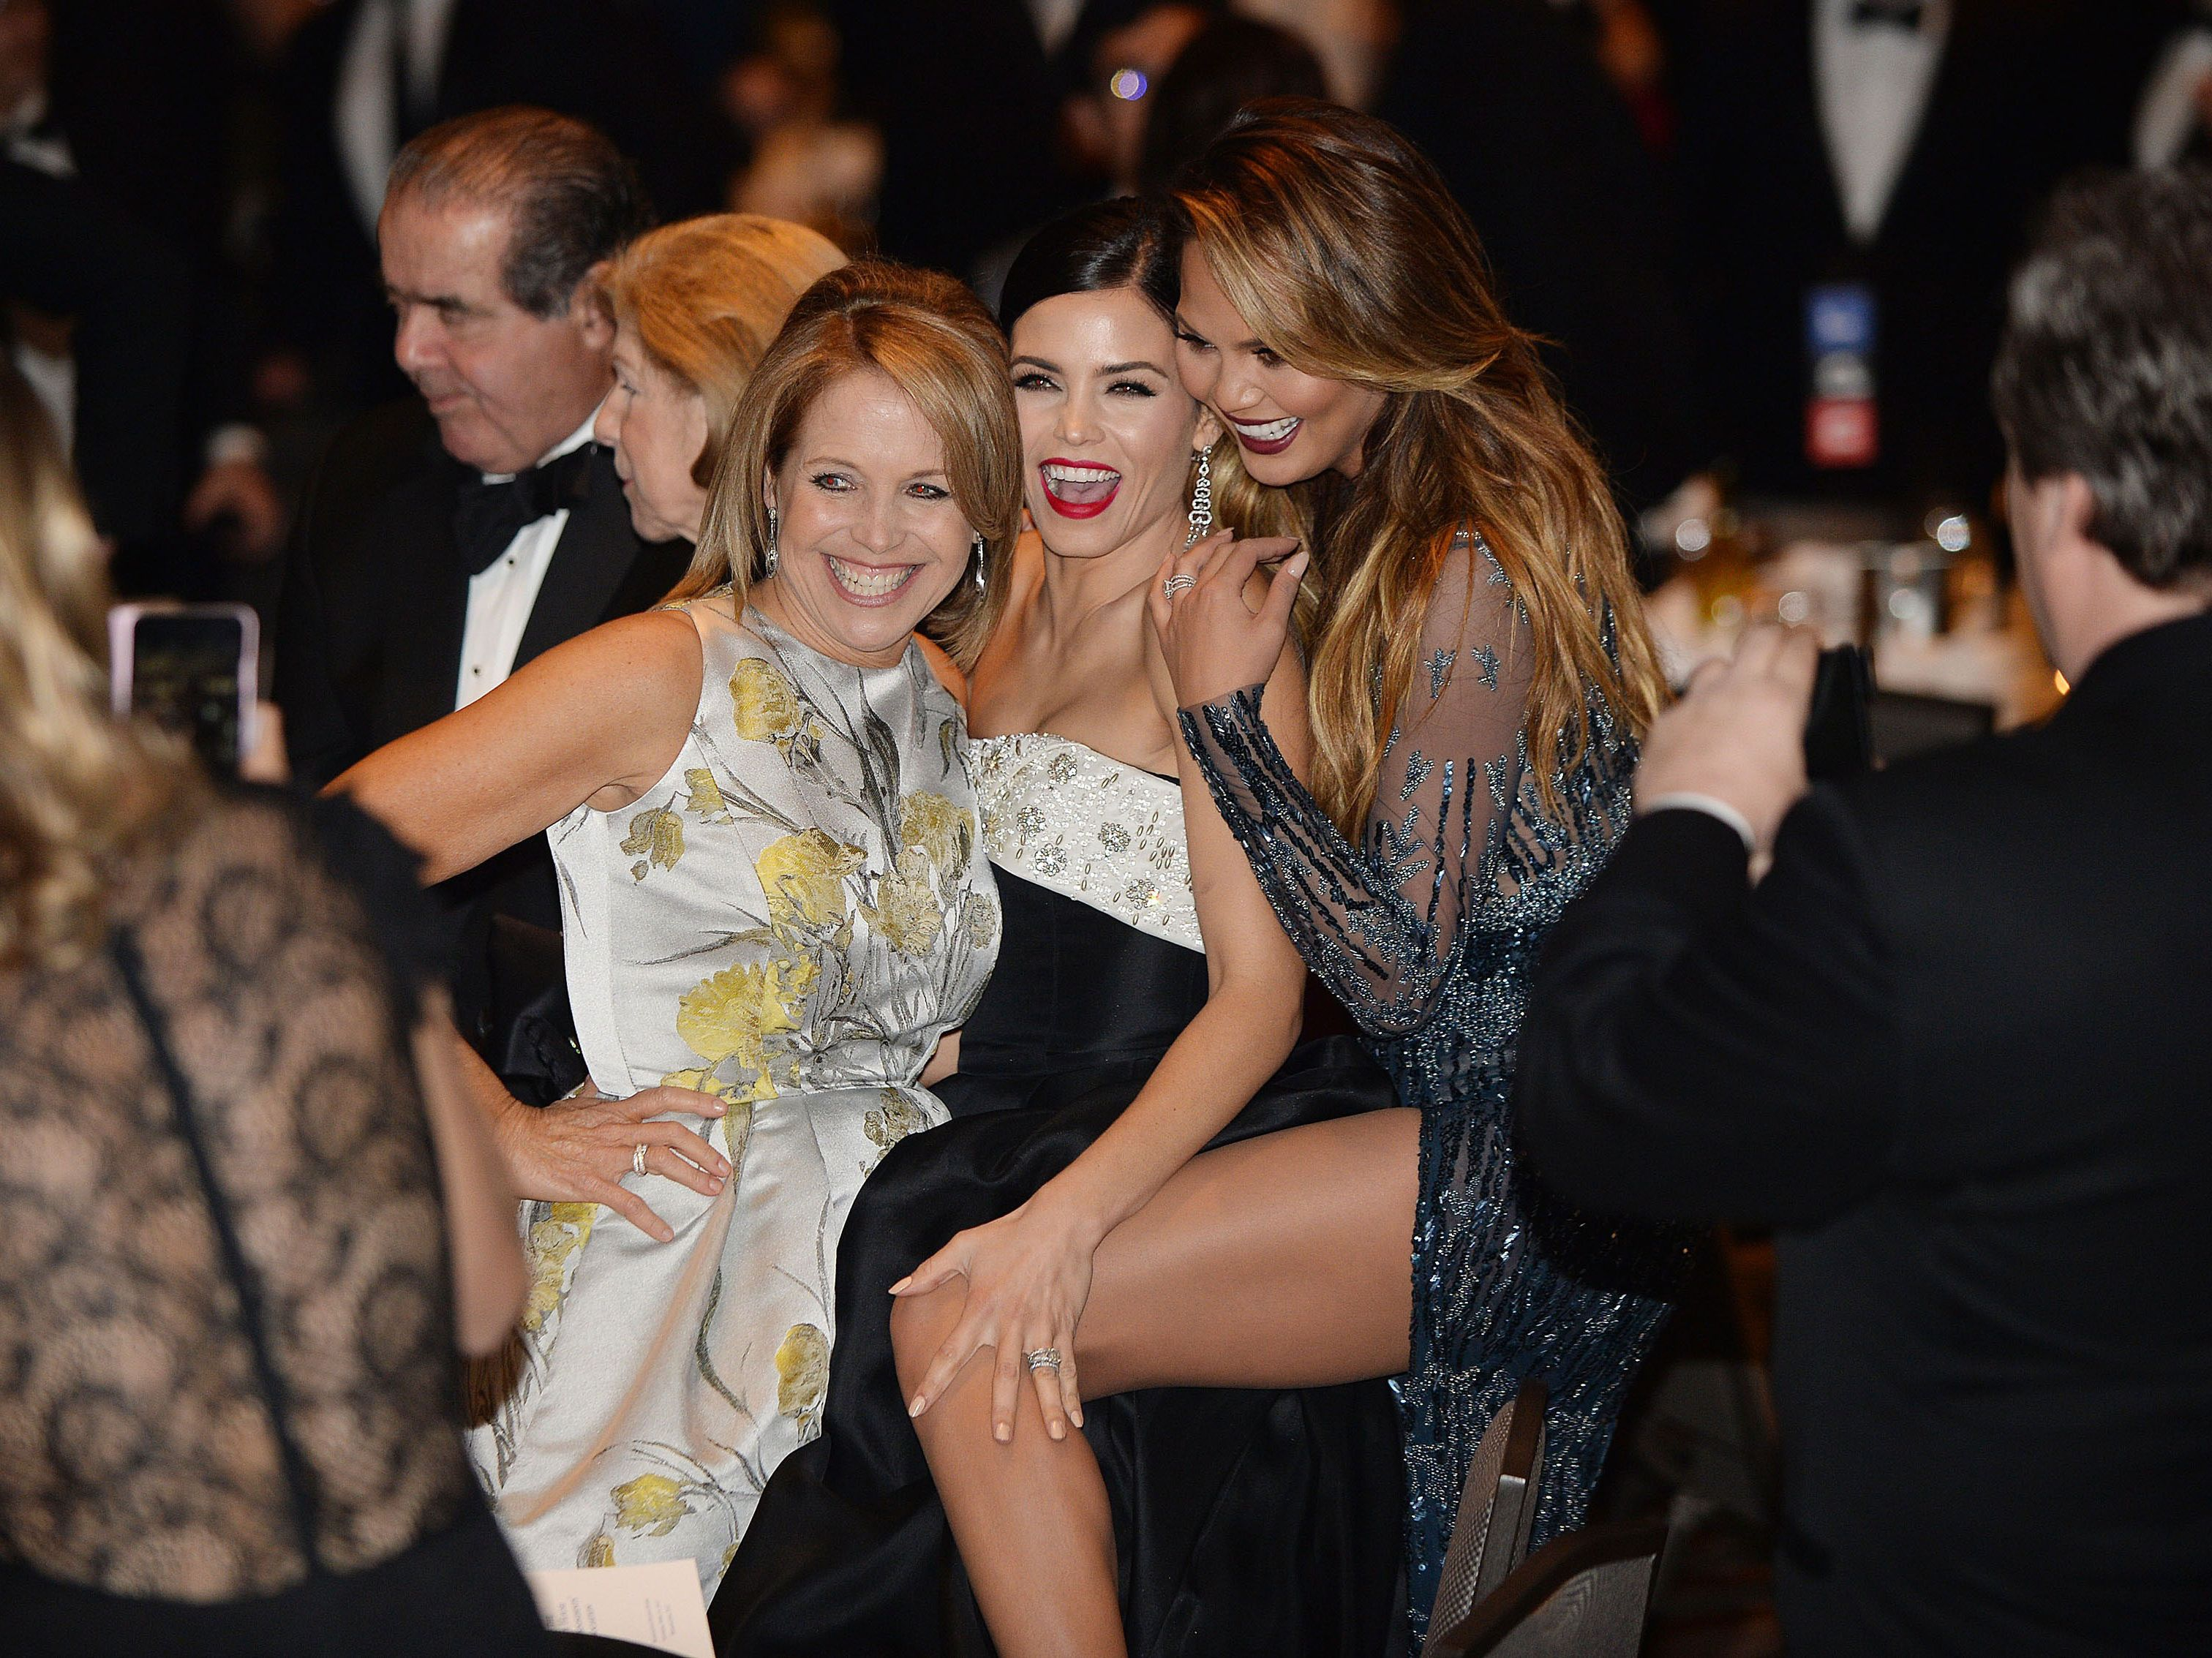 Katie Couric, Jenna Dewan-Tatum, and Chrissy Teigen at the White House Correspondent's Dinner in 2015